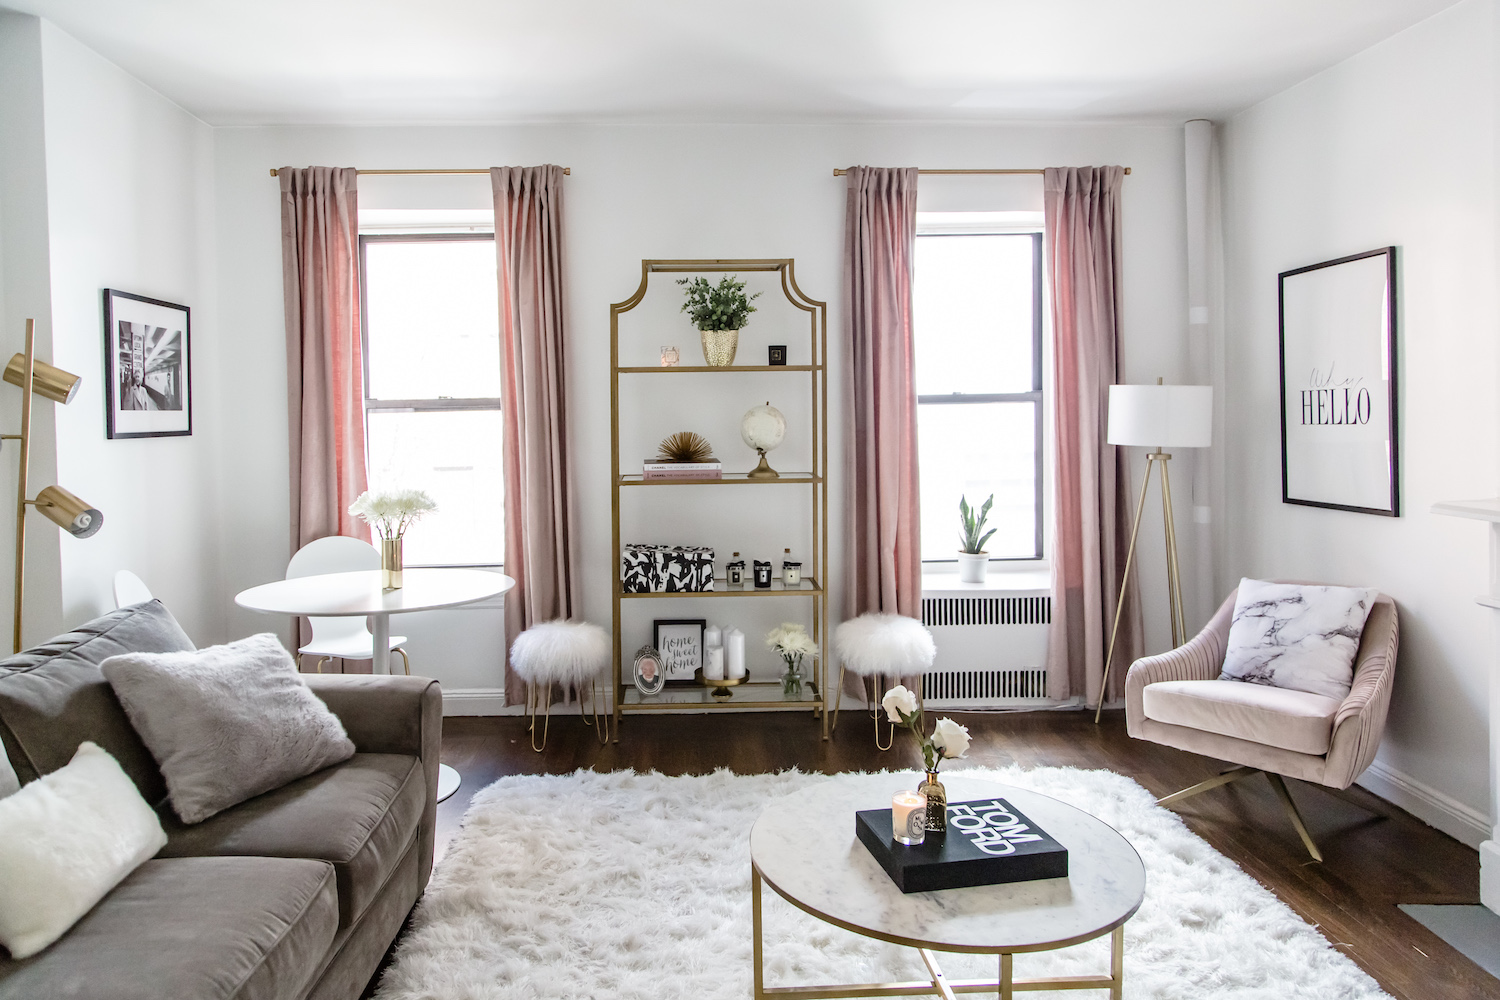 Living Room Tour - Living Room Transformation - NYC Apartment Tour